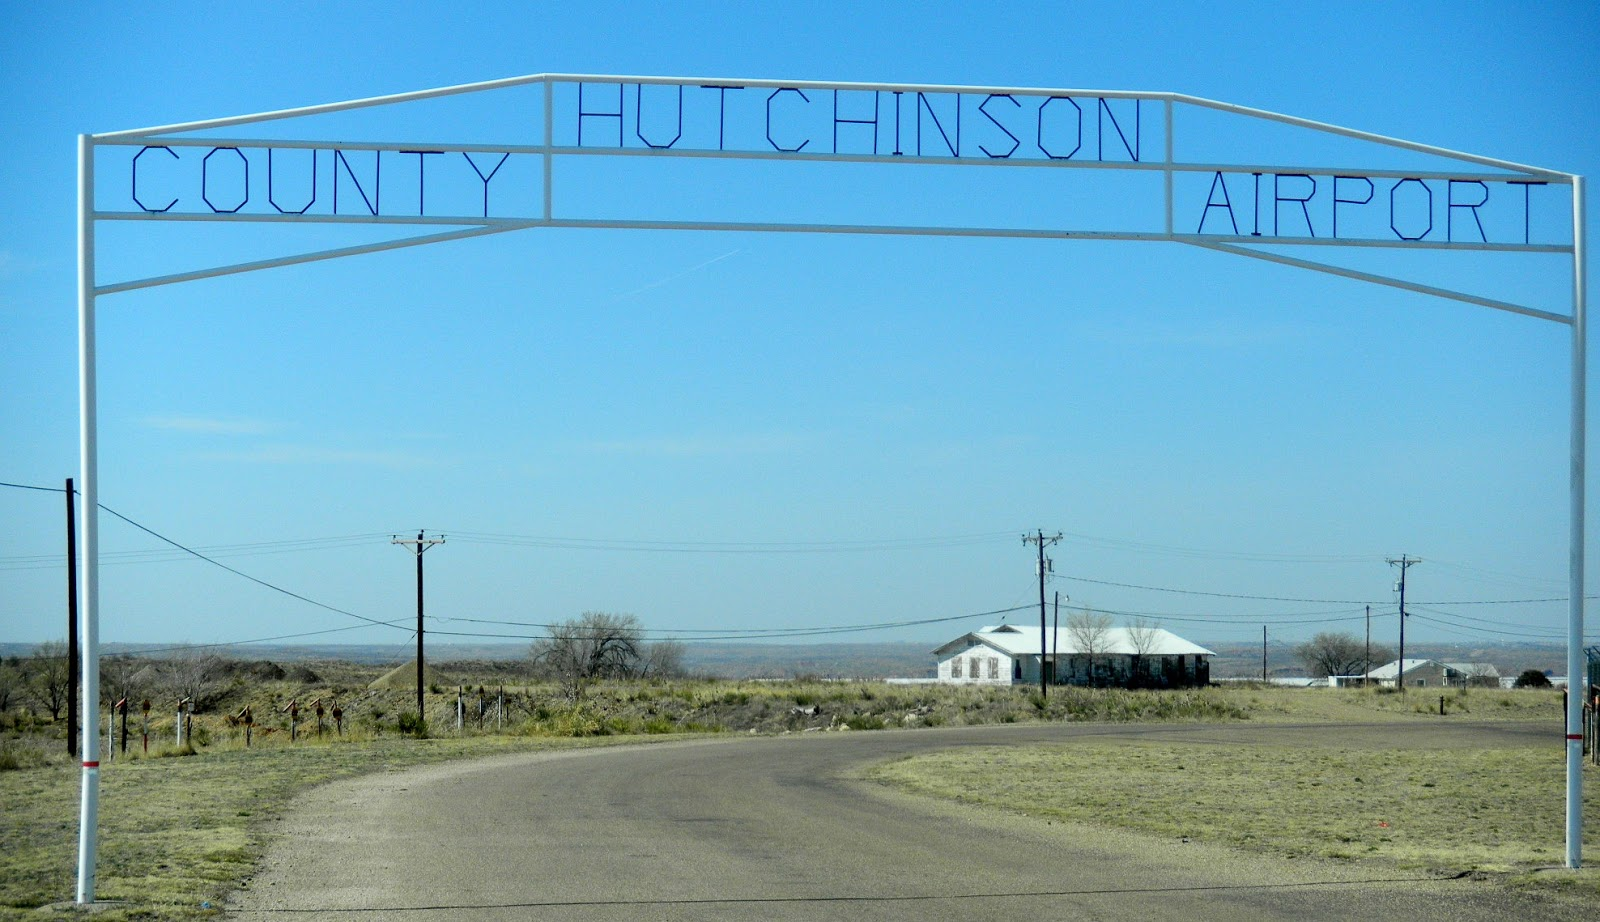 hutchinson county Listen online to hutchinson county sheriff and eoc, borger police and fire radio  station for free – great choice for borger, united states listen live hutchinson.